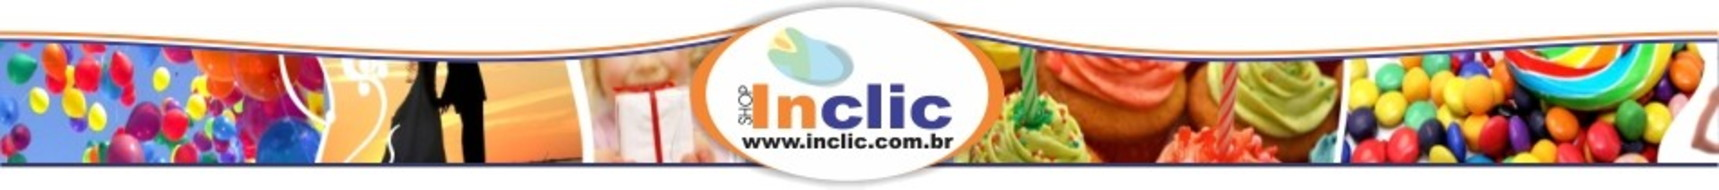 Shop inclic Lembrancinhas, Convites e artigos para festas